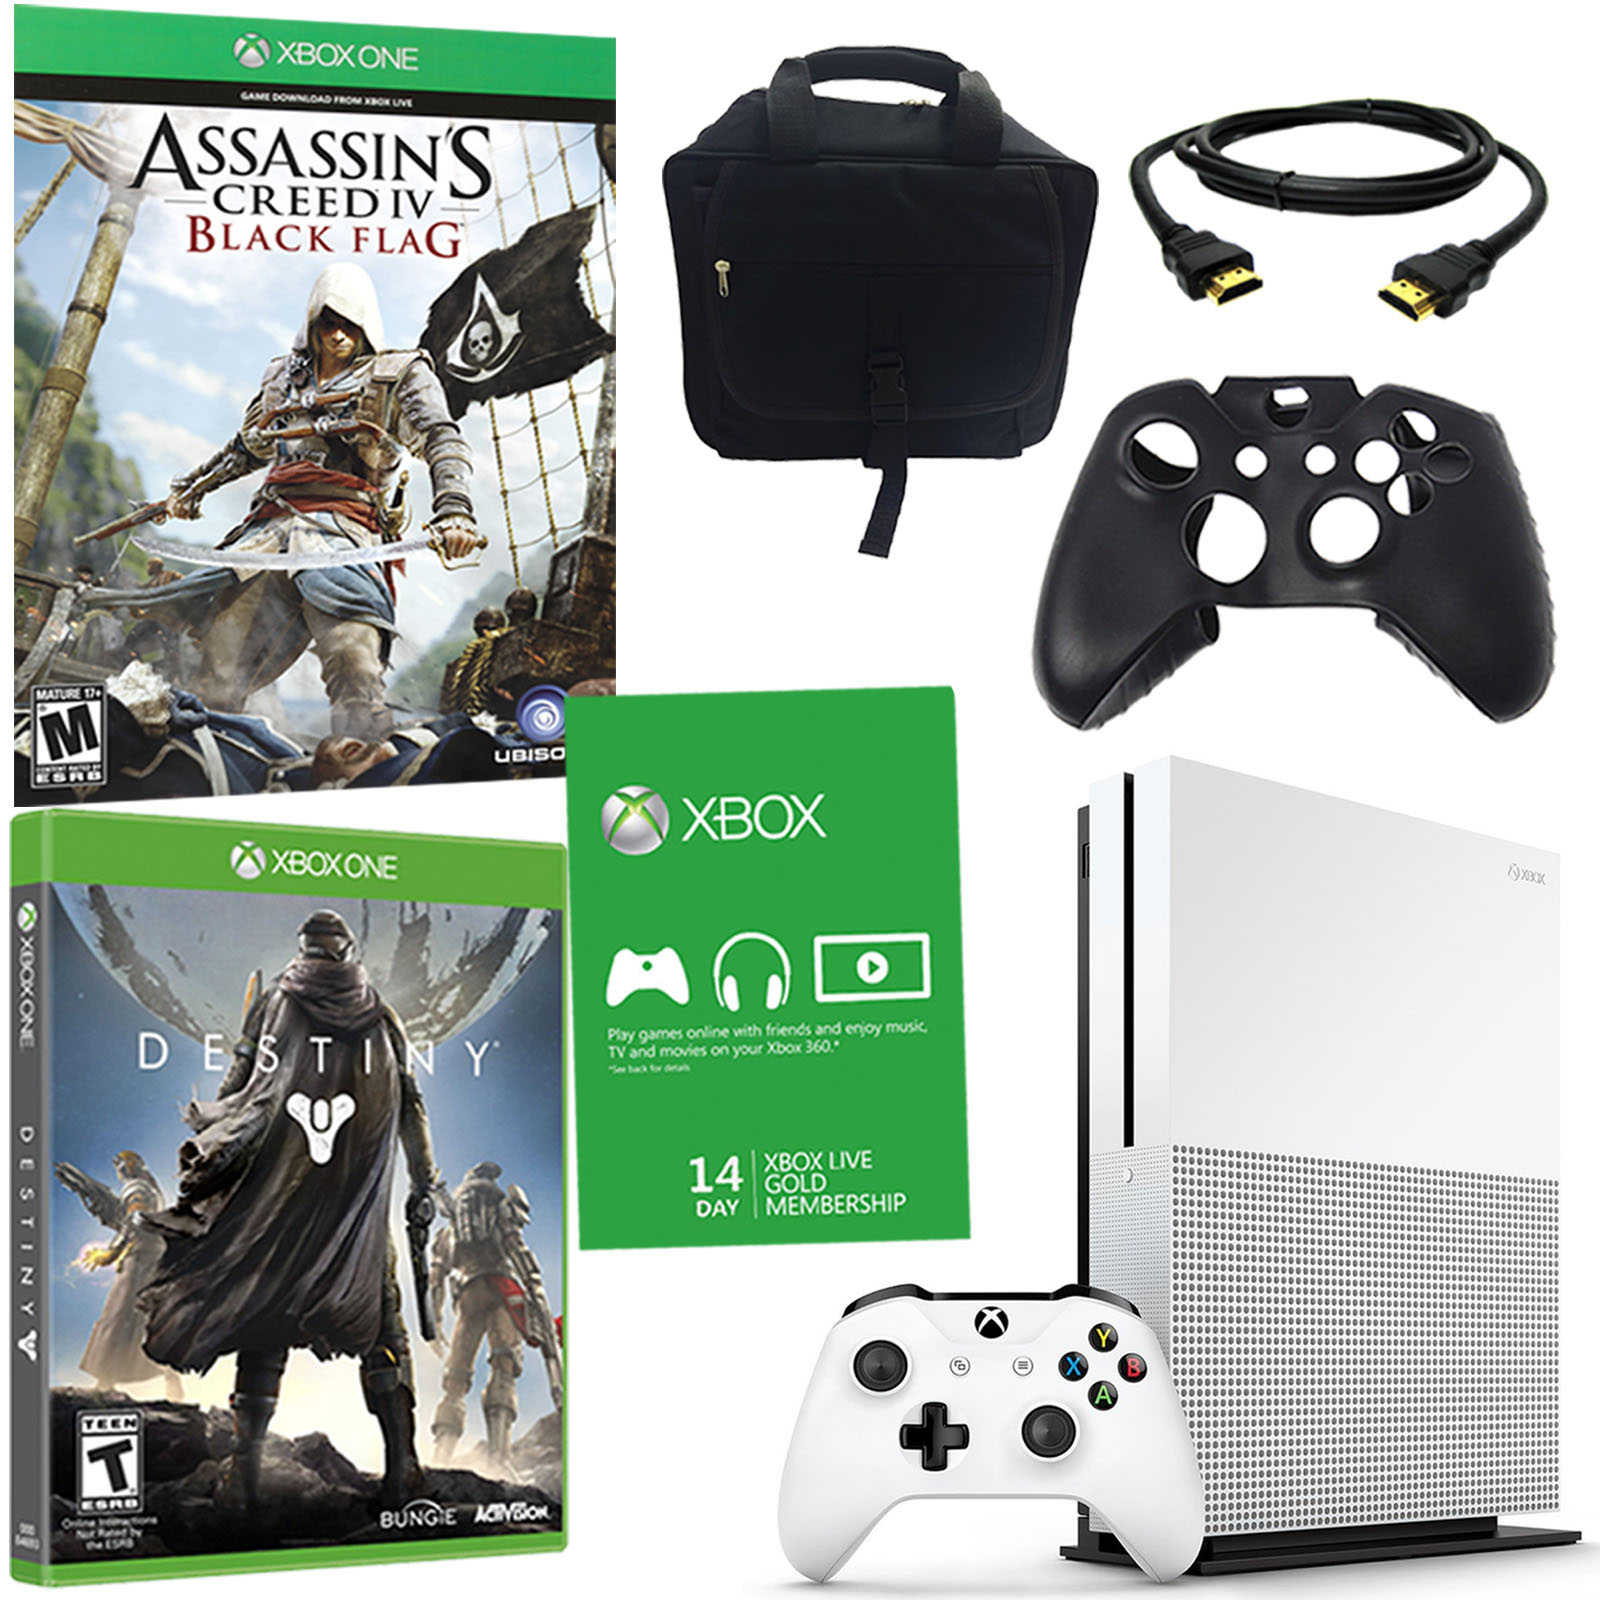 Xbox One S 2TB Console with 2 Games and Accessories